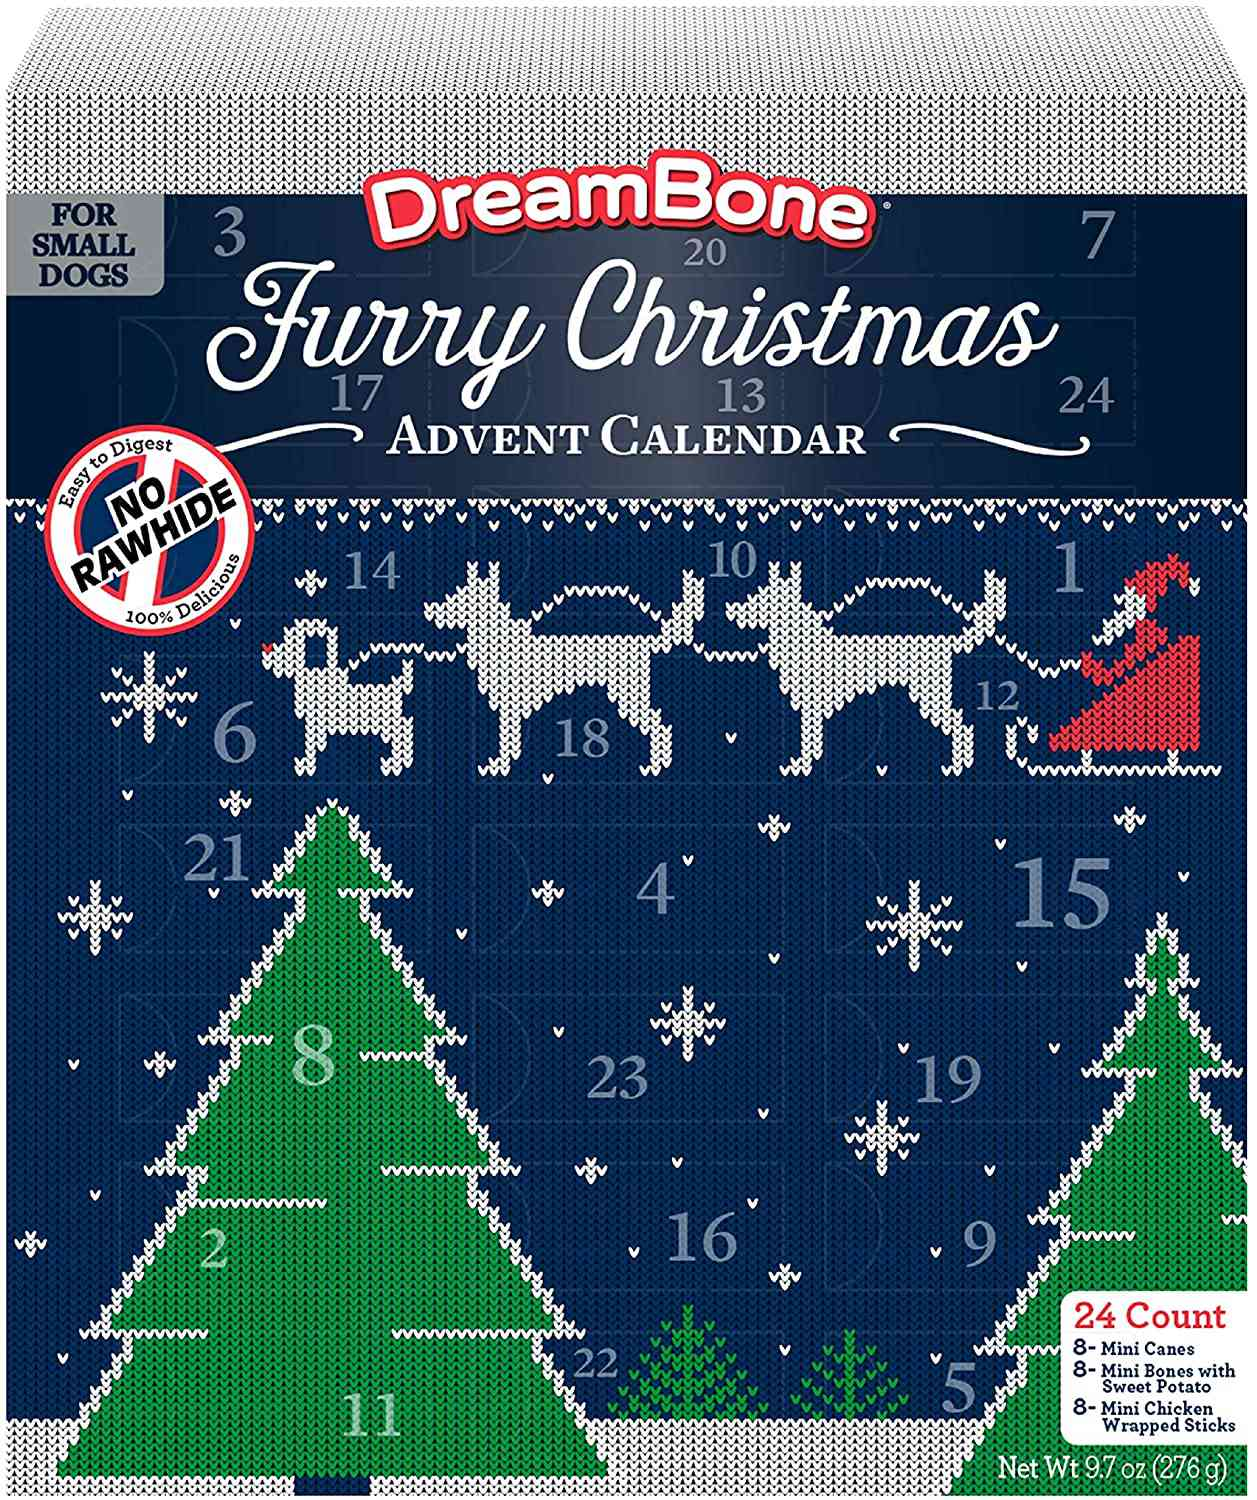 DreamBone Holiday Advent Calendar with Limited Edition Holiday Dog Treats